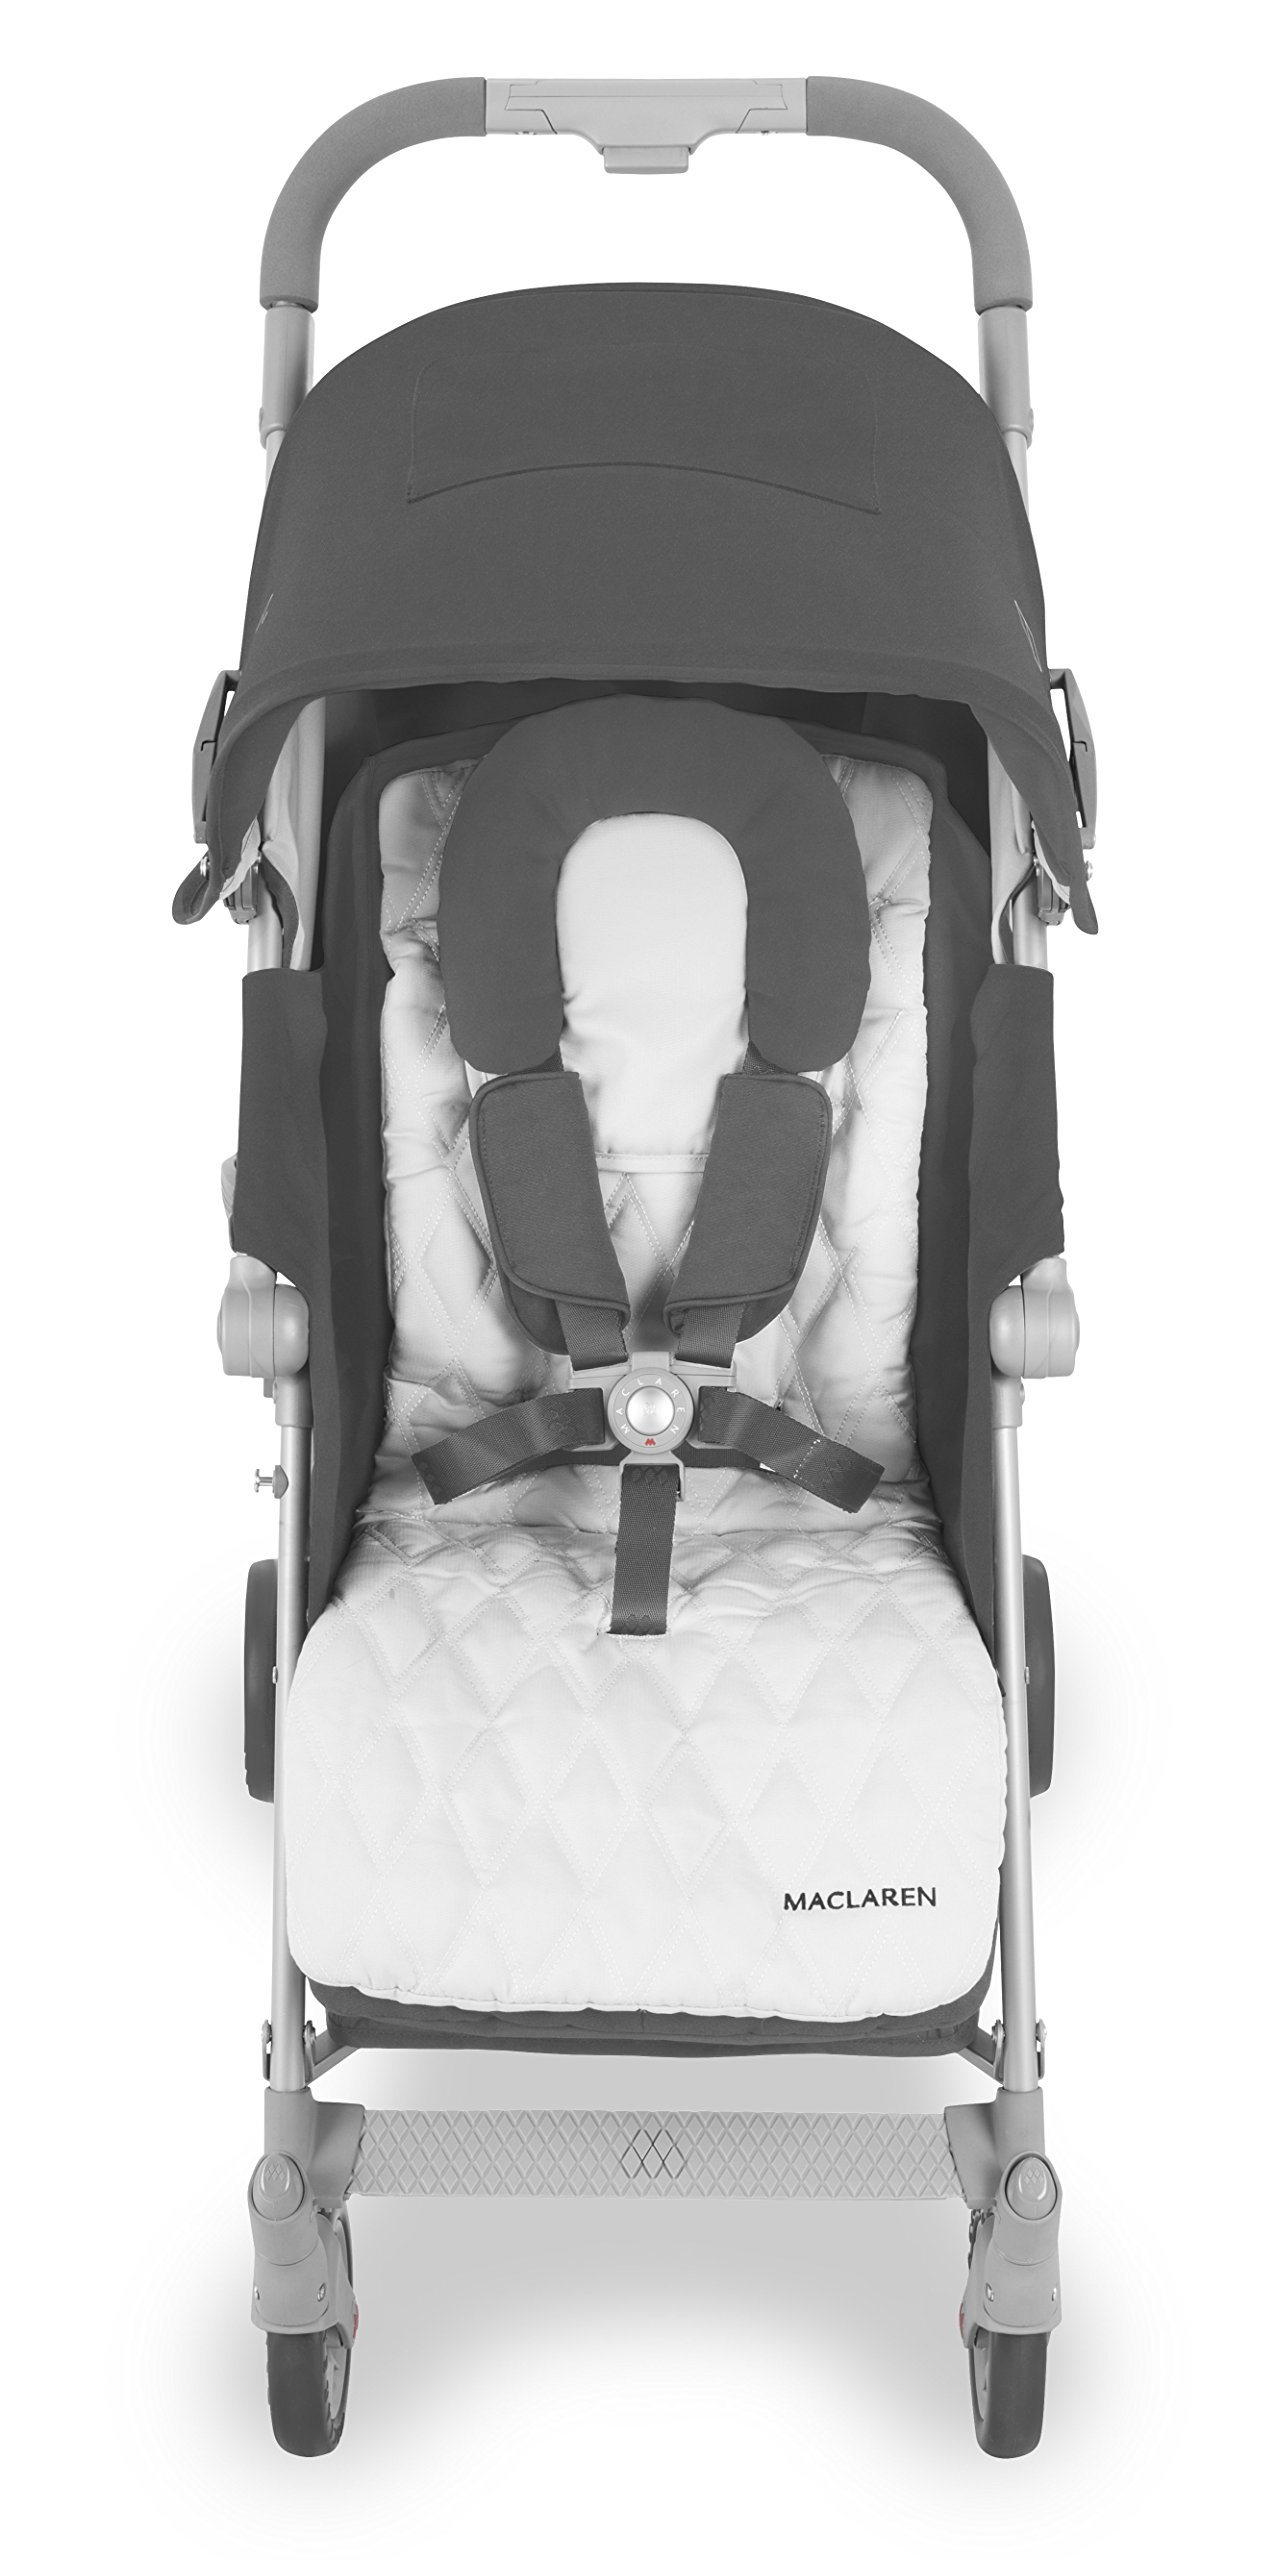 Maclaren Techno XLR arc Travel System Stroller Maclaren Basic weight of 6.7kg/14.8lb; ideal for new-borns and children up to 25kg/55lb (usa 65lb) Maclaren is the only brand to offer a sovereign lifetime warranty Extendable upf 50+ sun canopy and built-in sun visor 4